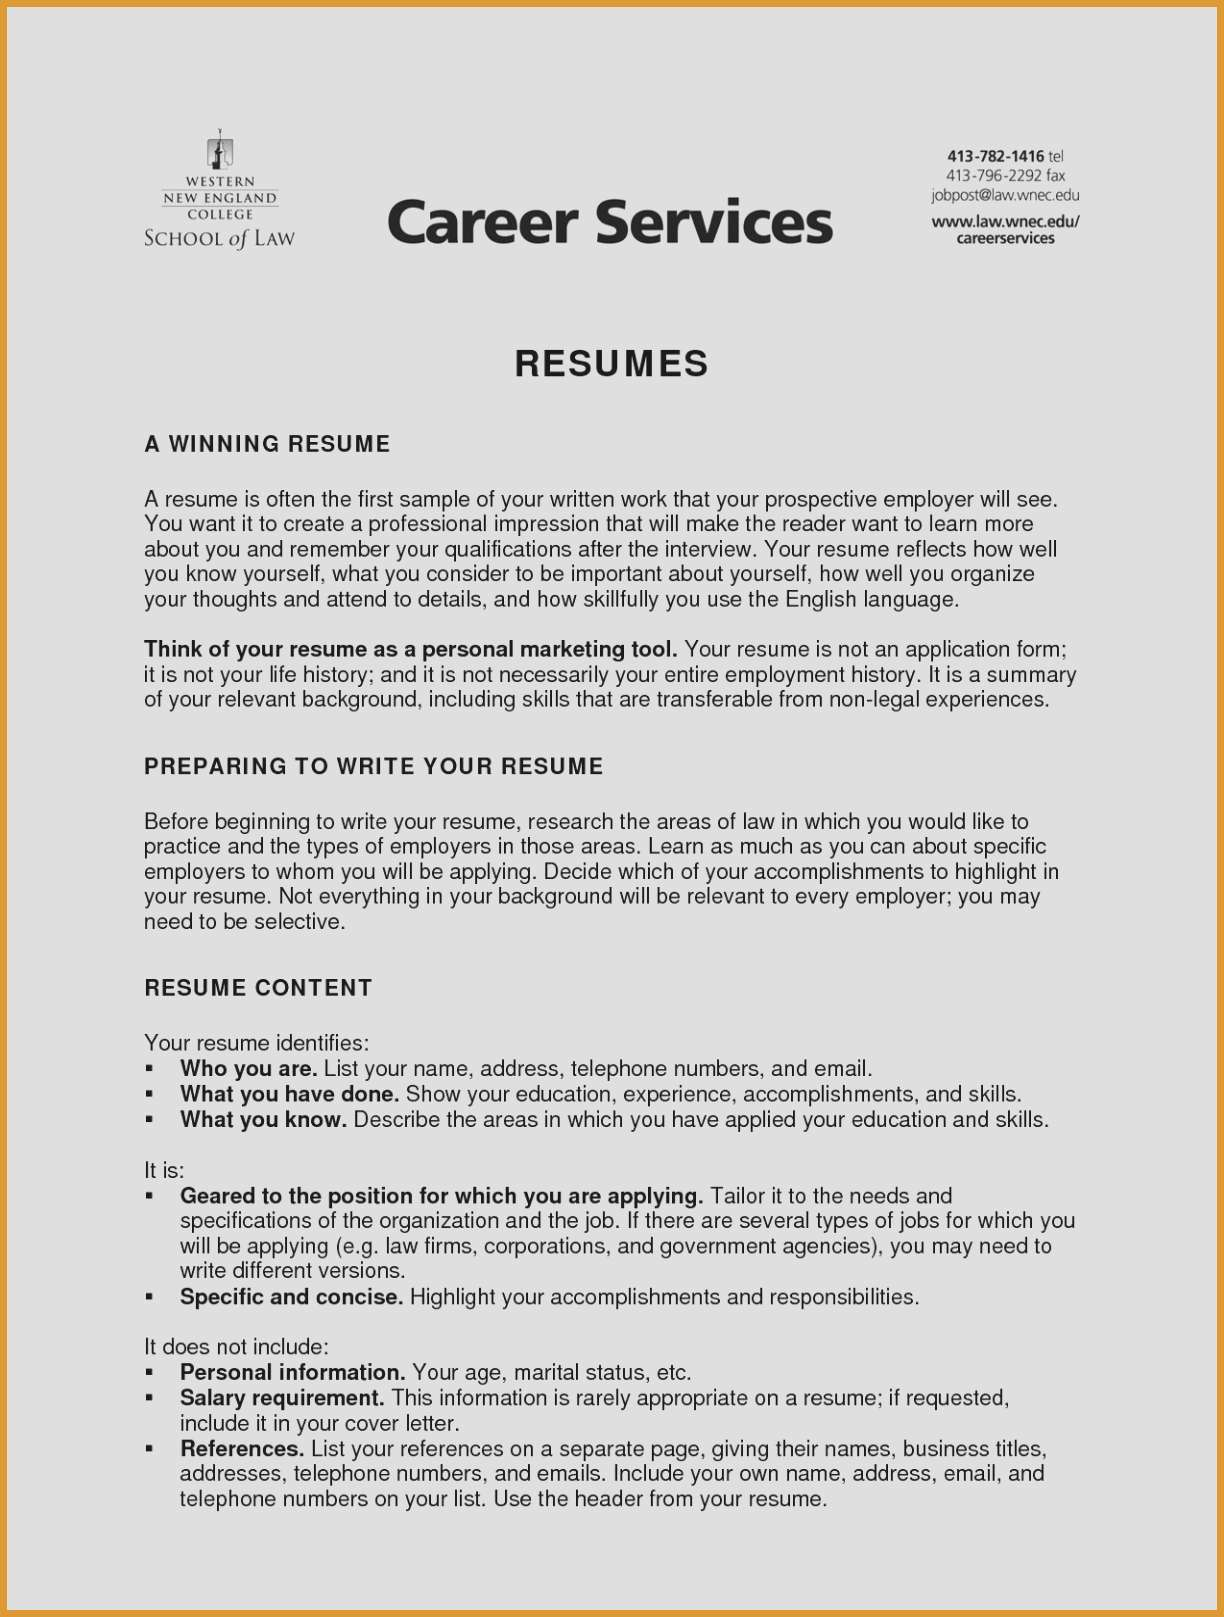 Proper Cover Letter Template - Write Resumes Proper Resume Cover Letter Proper Cover Letter How to